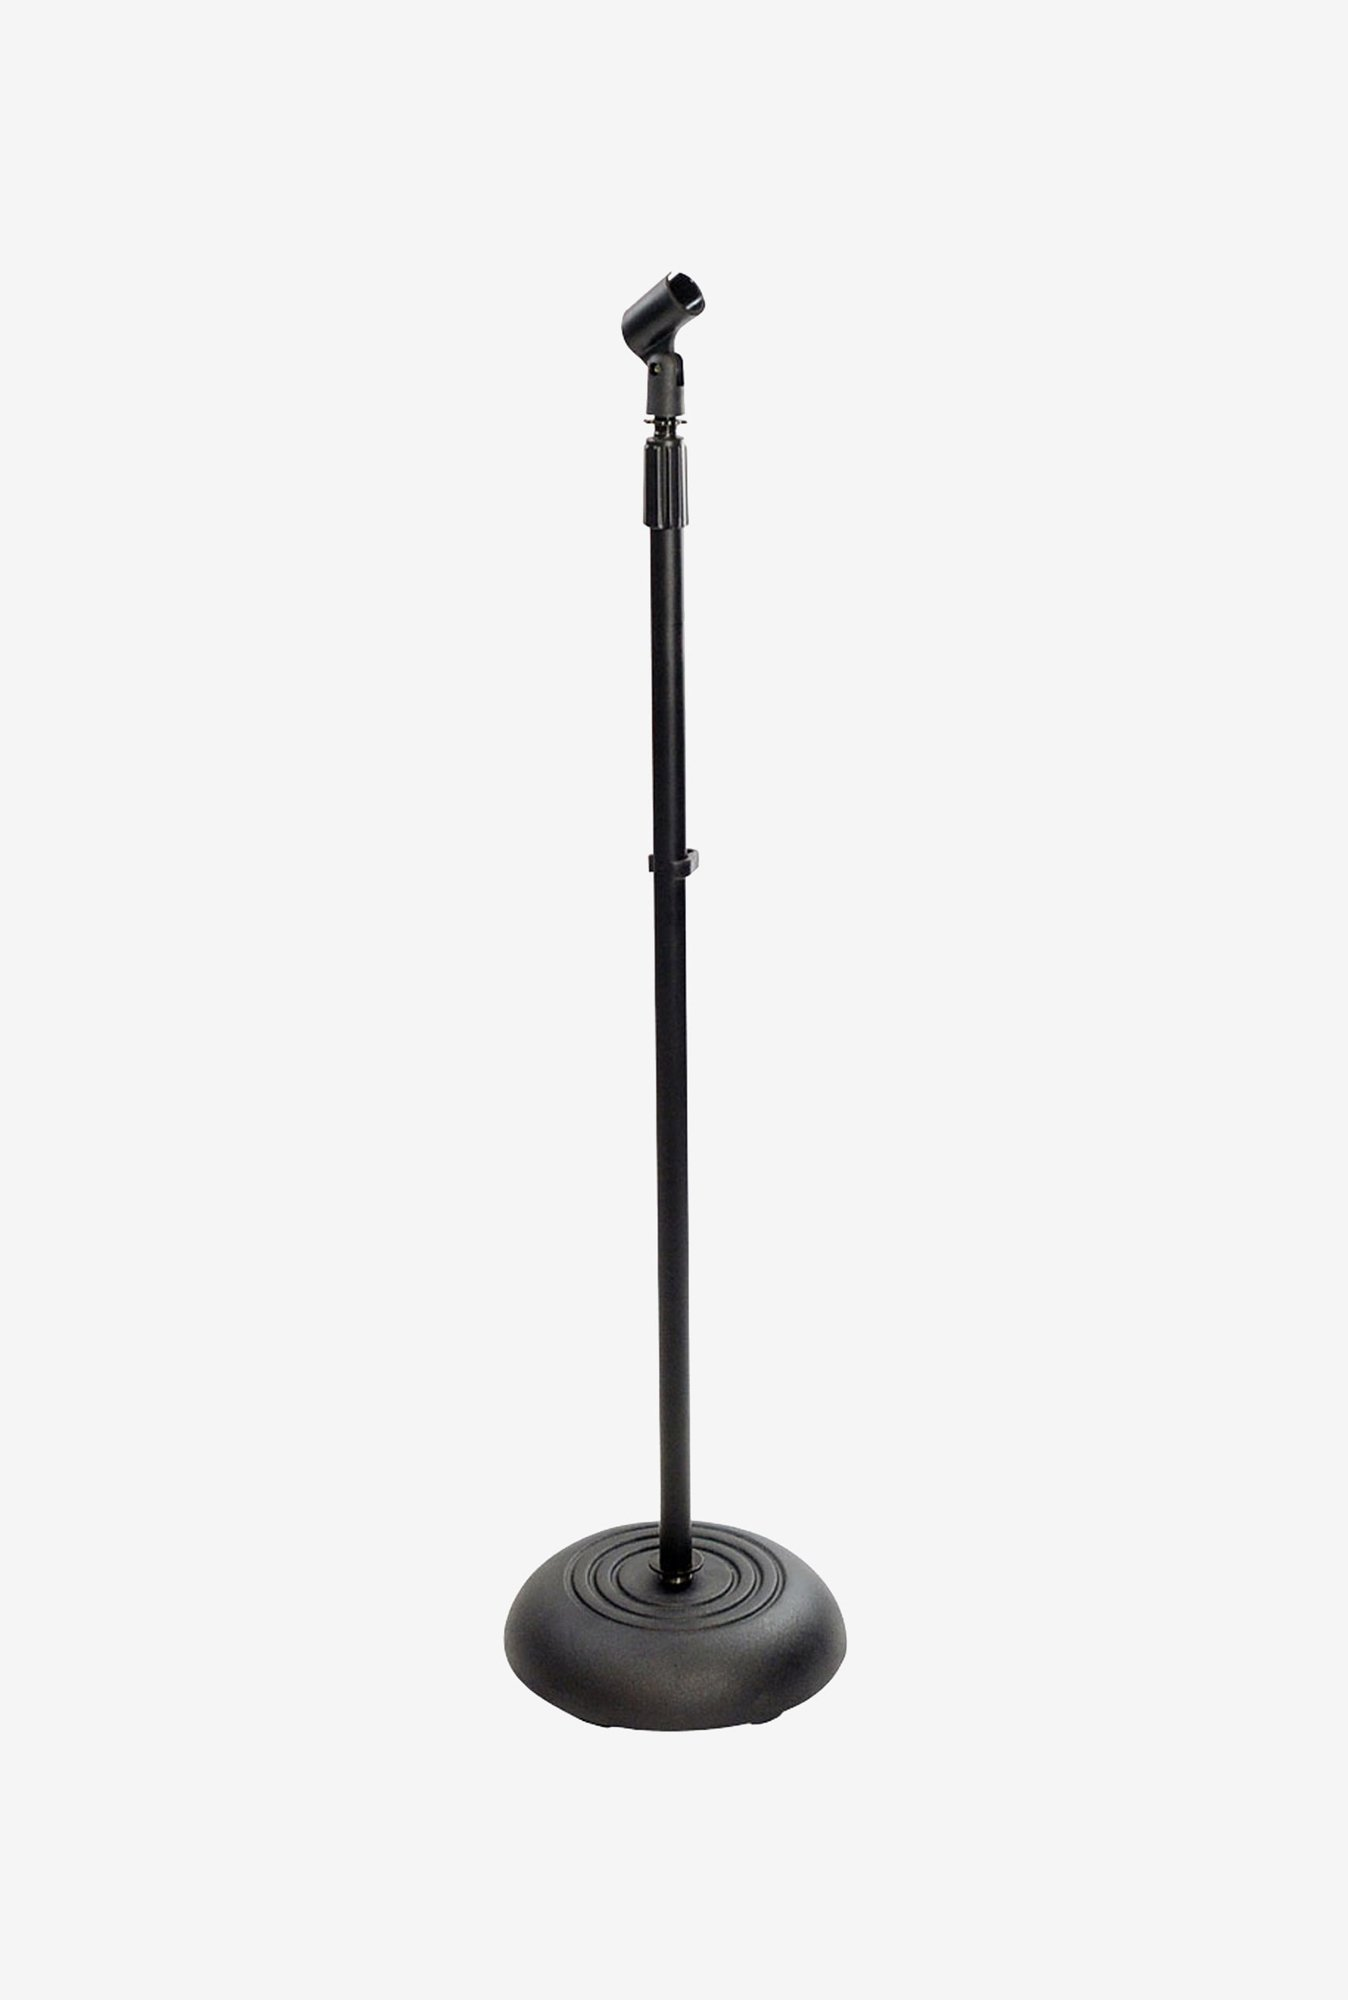 Pyle-Pro Compact Base Black Microphone Stand (Black)